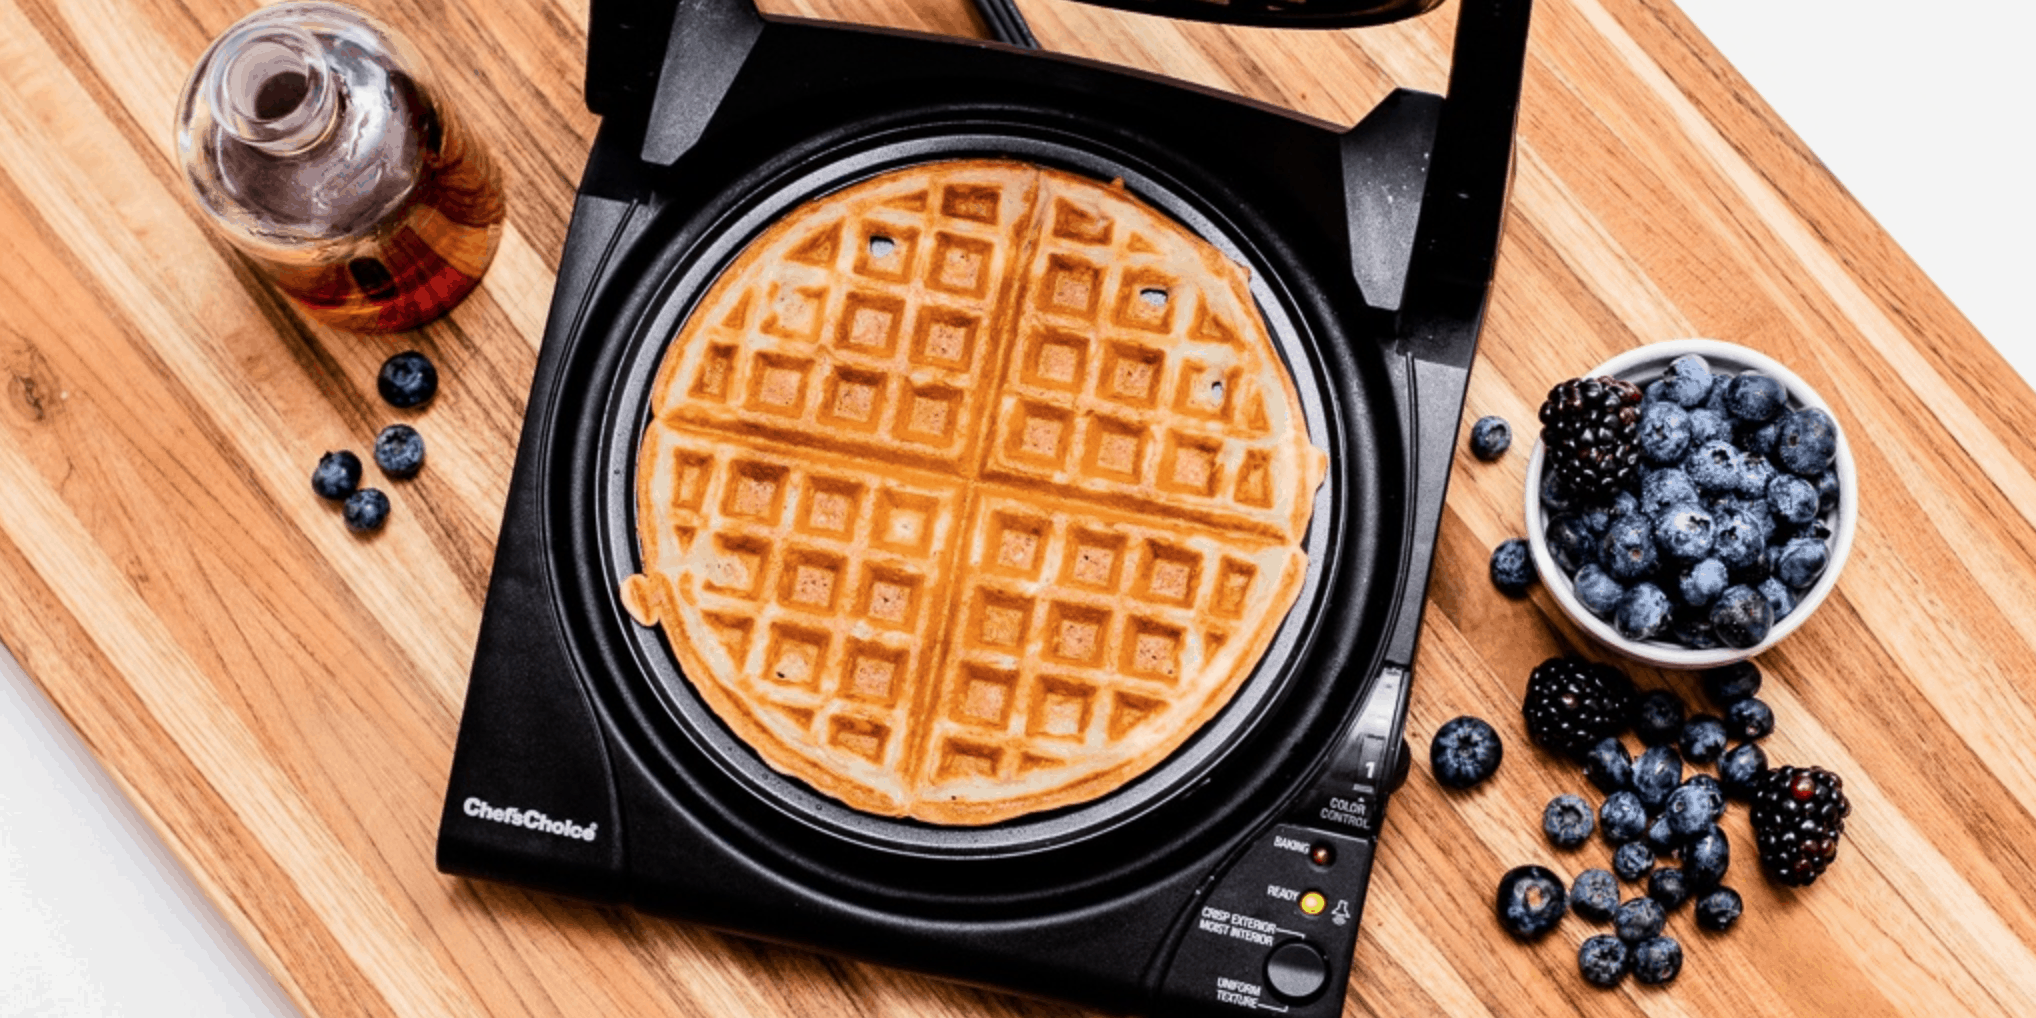 Waffle Maker with Blueberries and Syrup to the Side